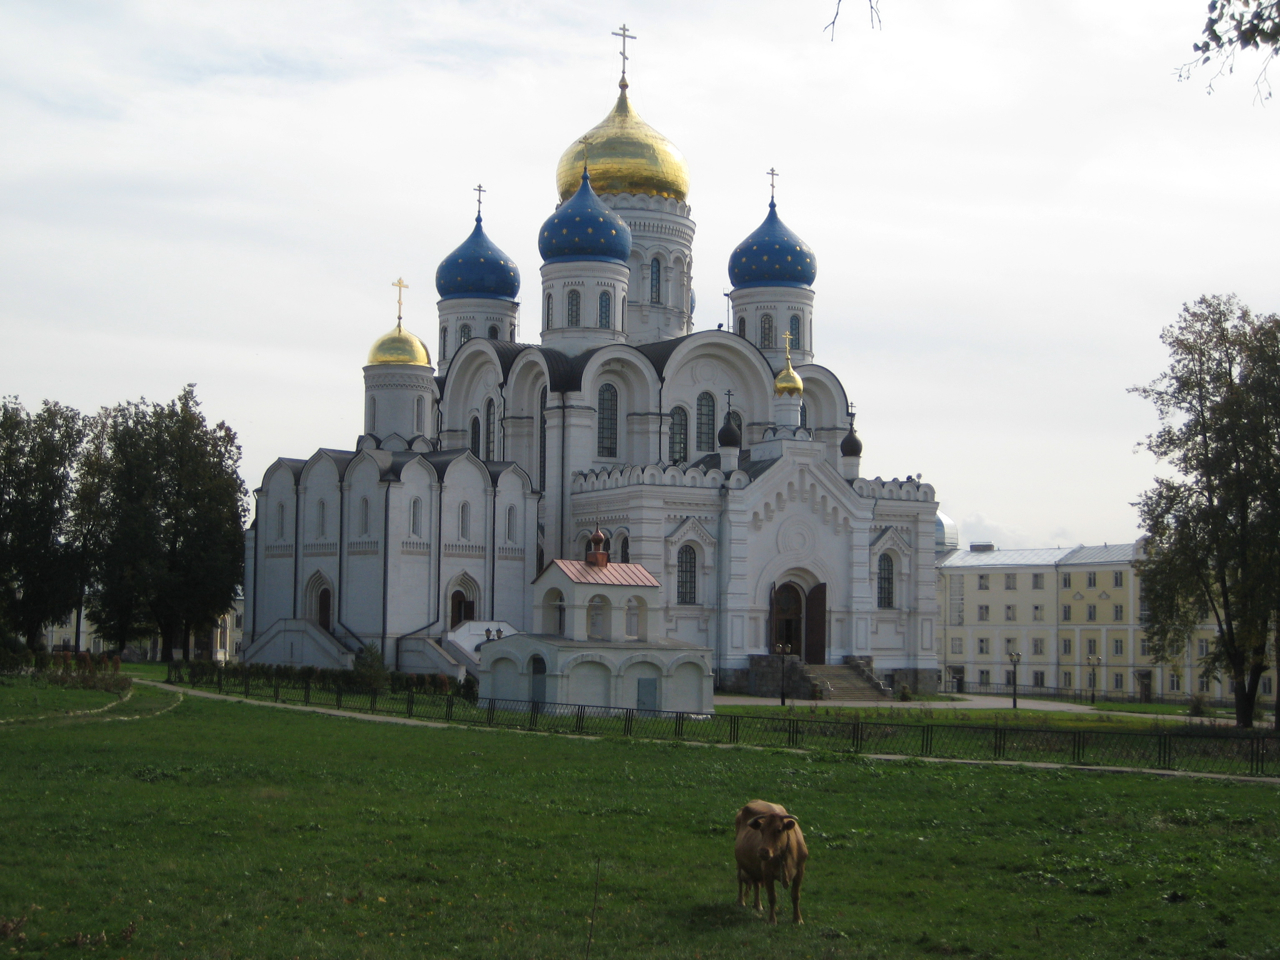 cow-in-front-of-the-cathedrals